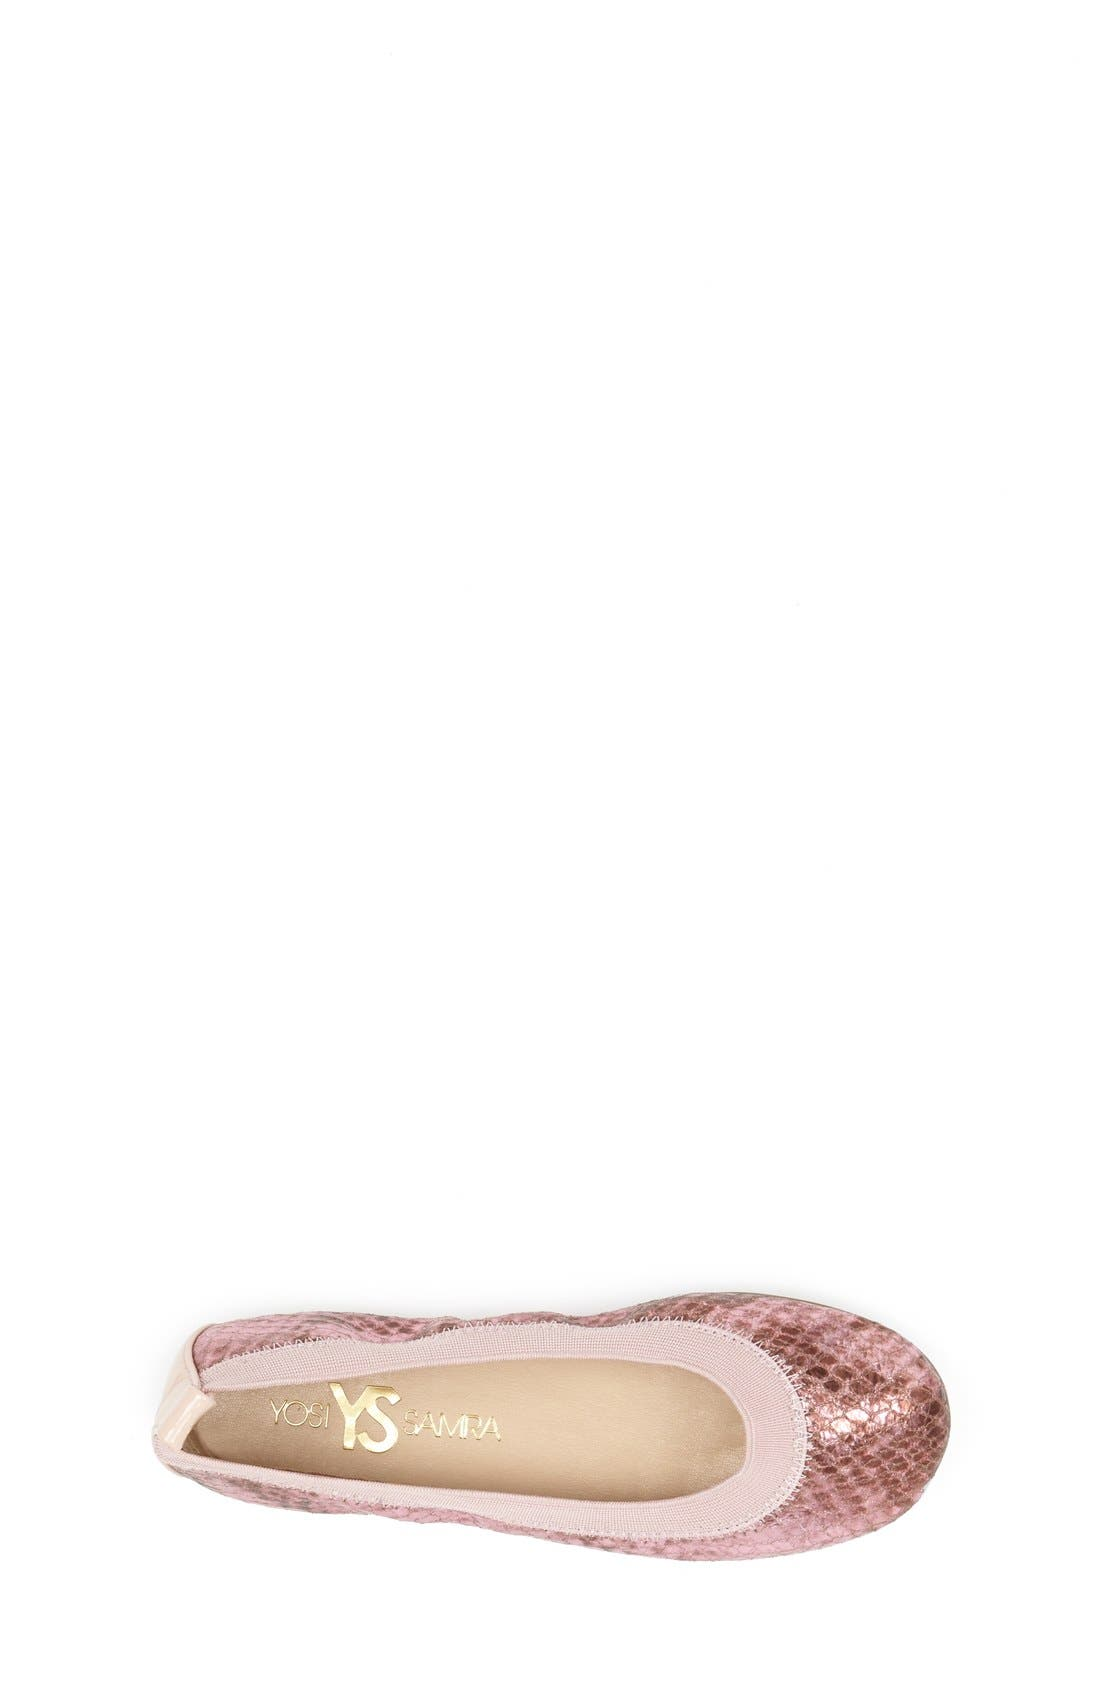 Alternate Image 2  - Yosi Samra Python Embossed Metallic Leather Flat (Toddler, Little Kid & Big Kid)